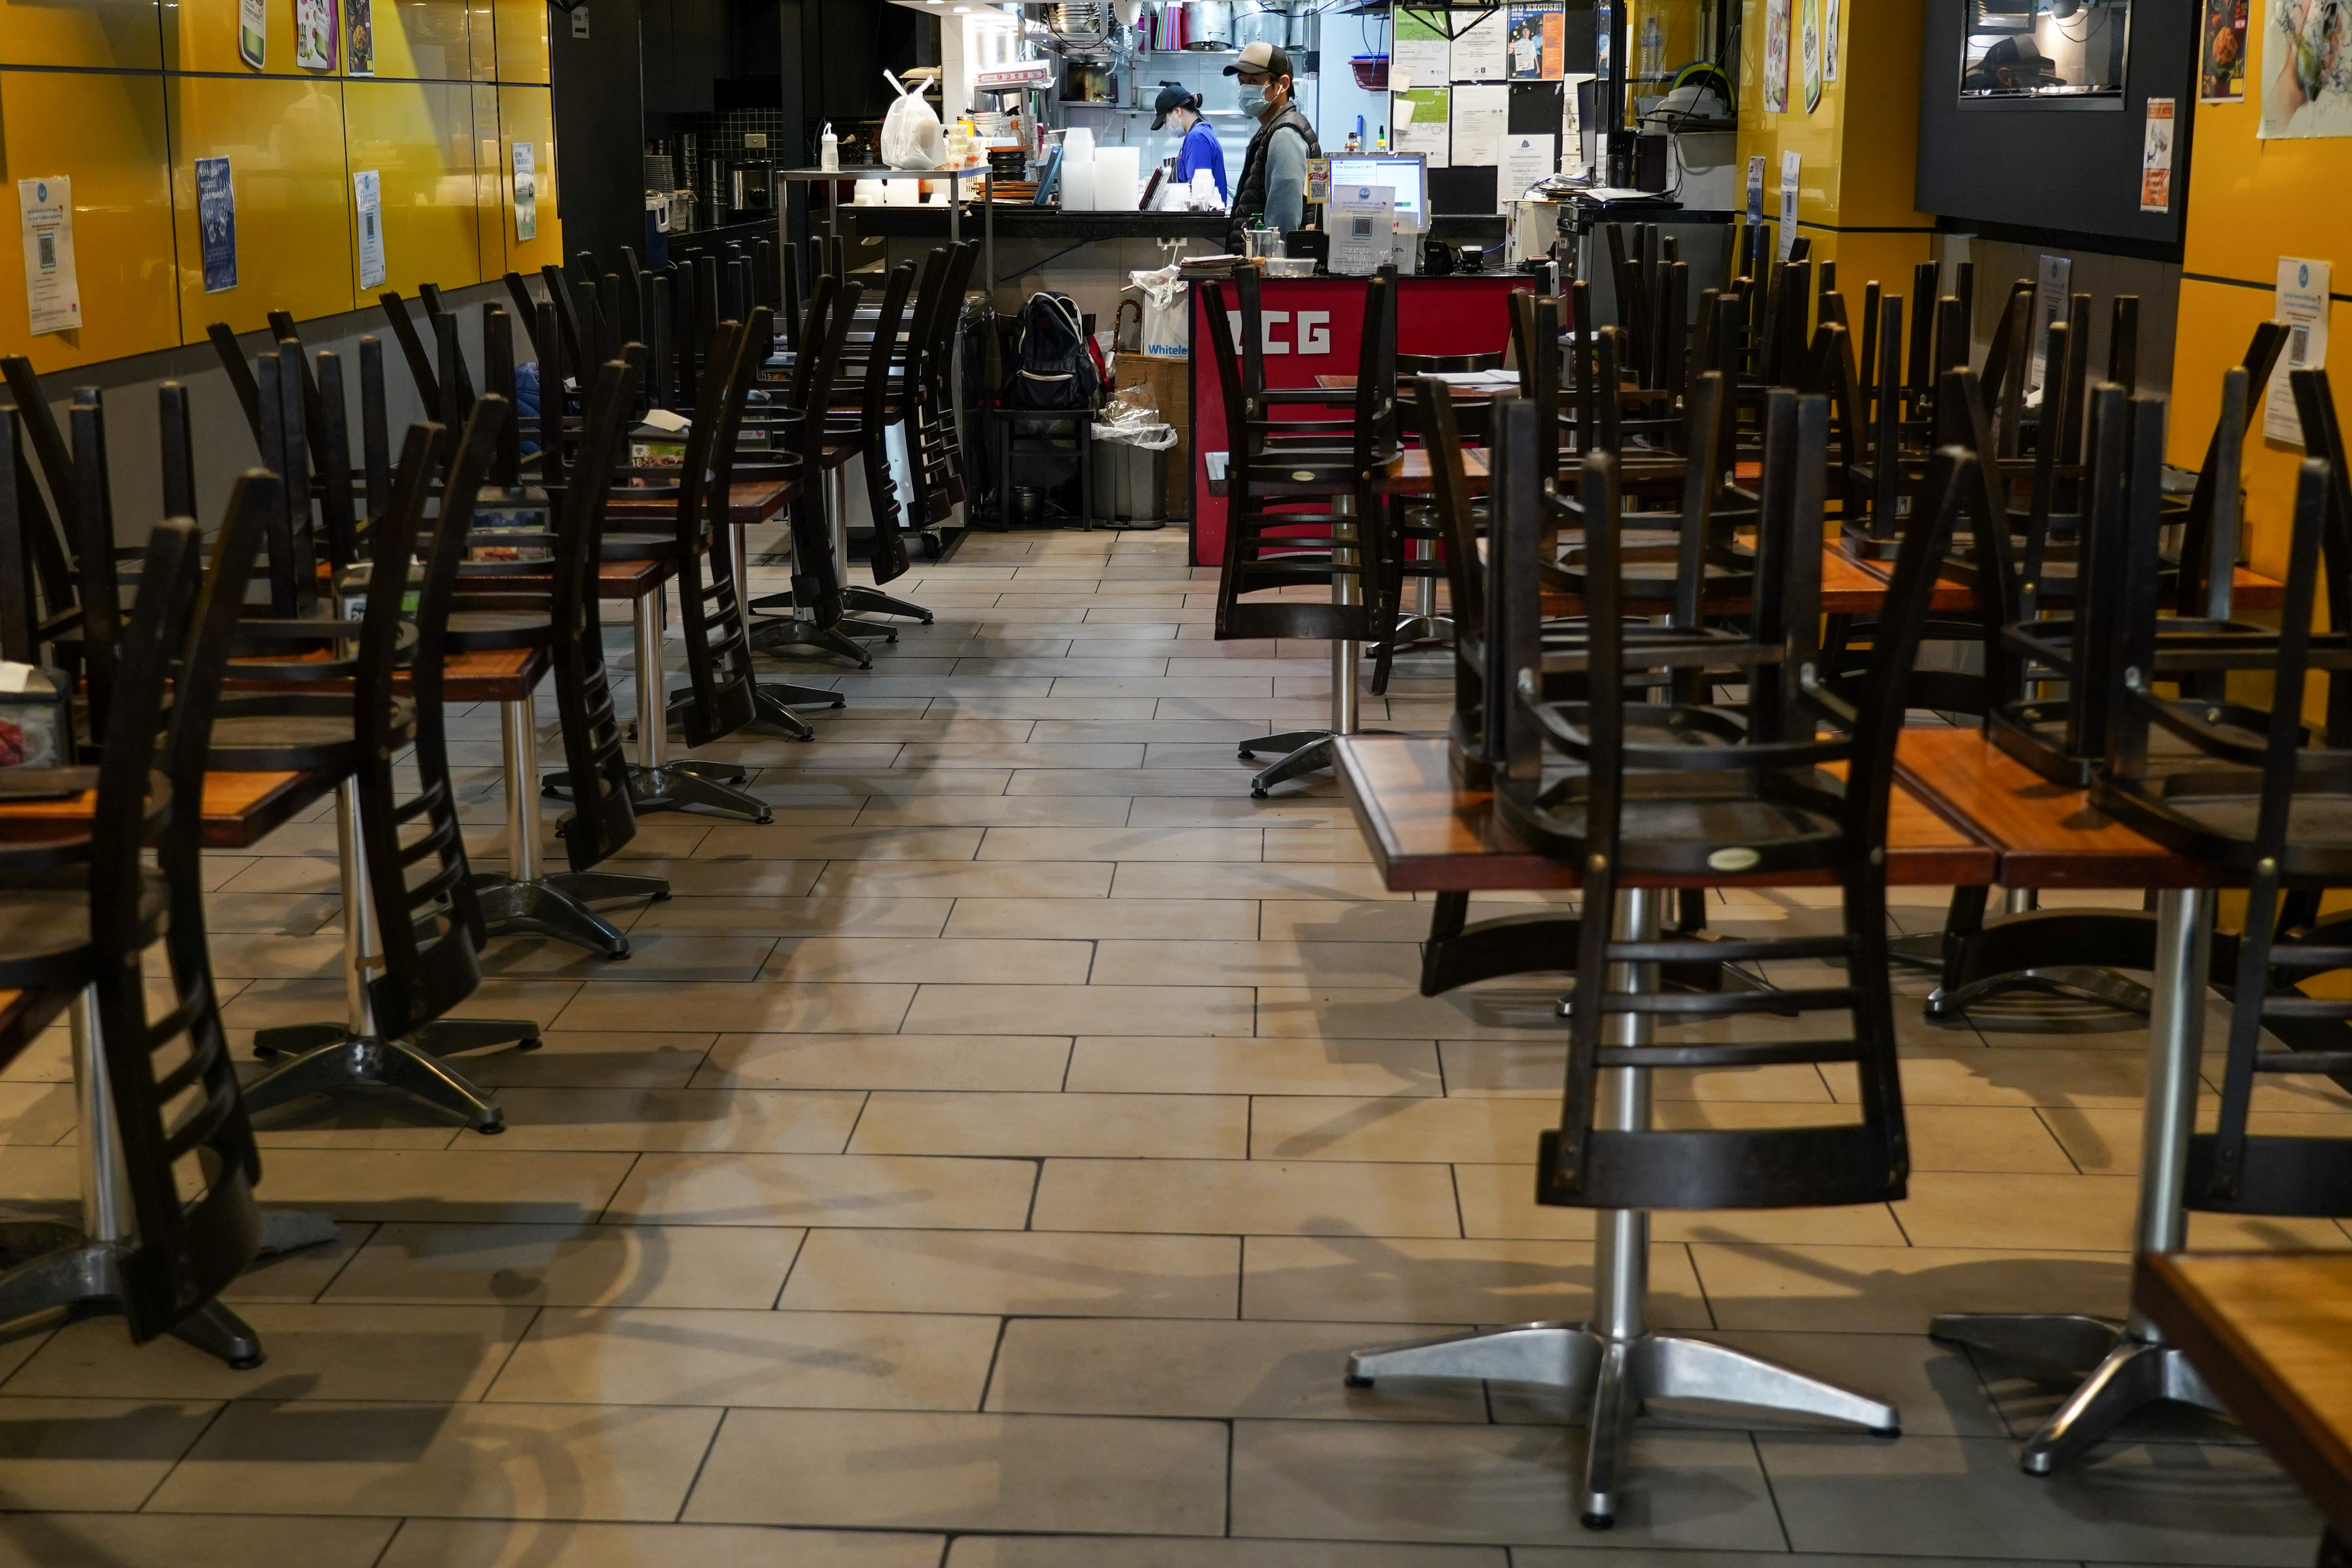 Chairs are stacked on tables inside a city centre restaurant serving takeaway but closed for dine-in during a lockdown to curb the spread of a coronavirus disease (COVID-19) outbreak in Sydney, Australia, July 12, 2021.  REUTERS/Loren Elliott